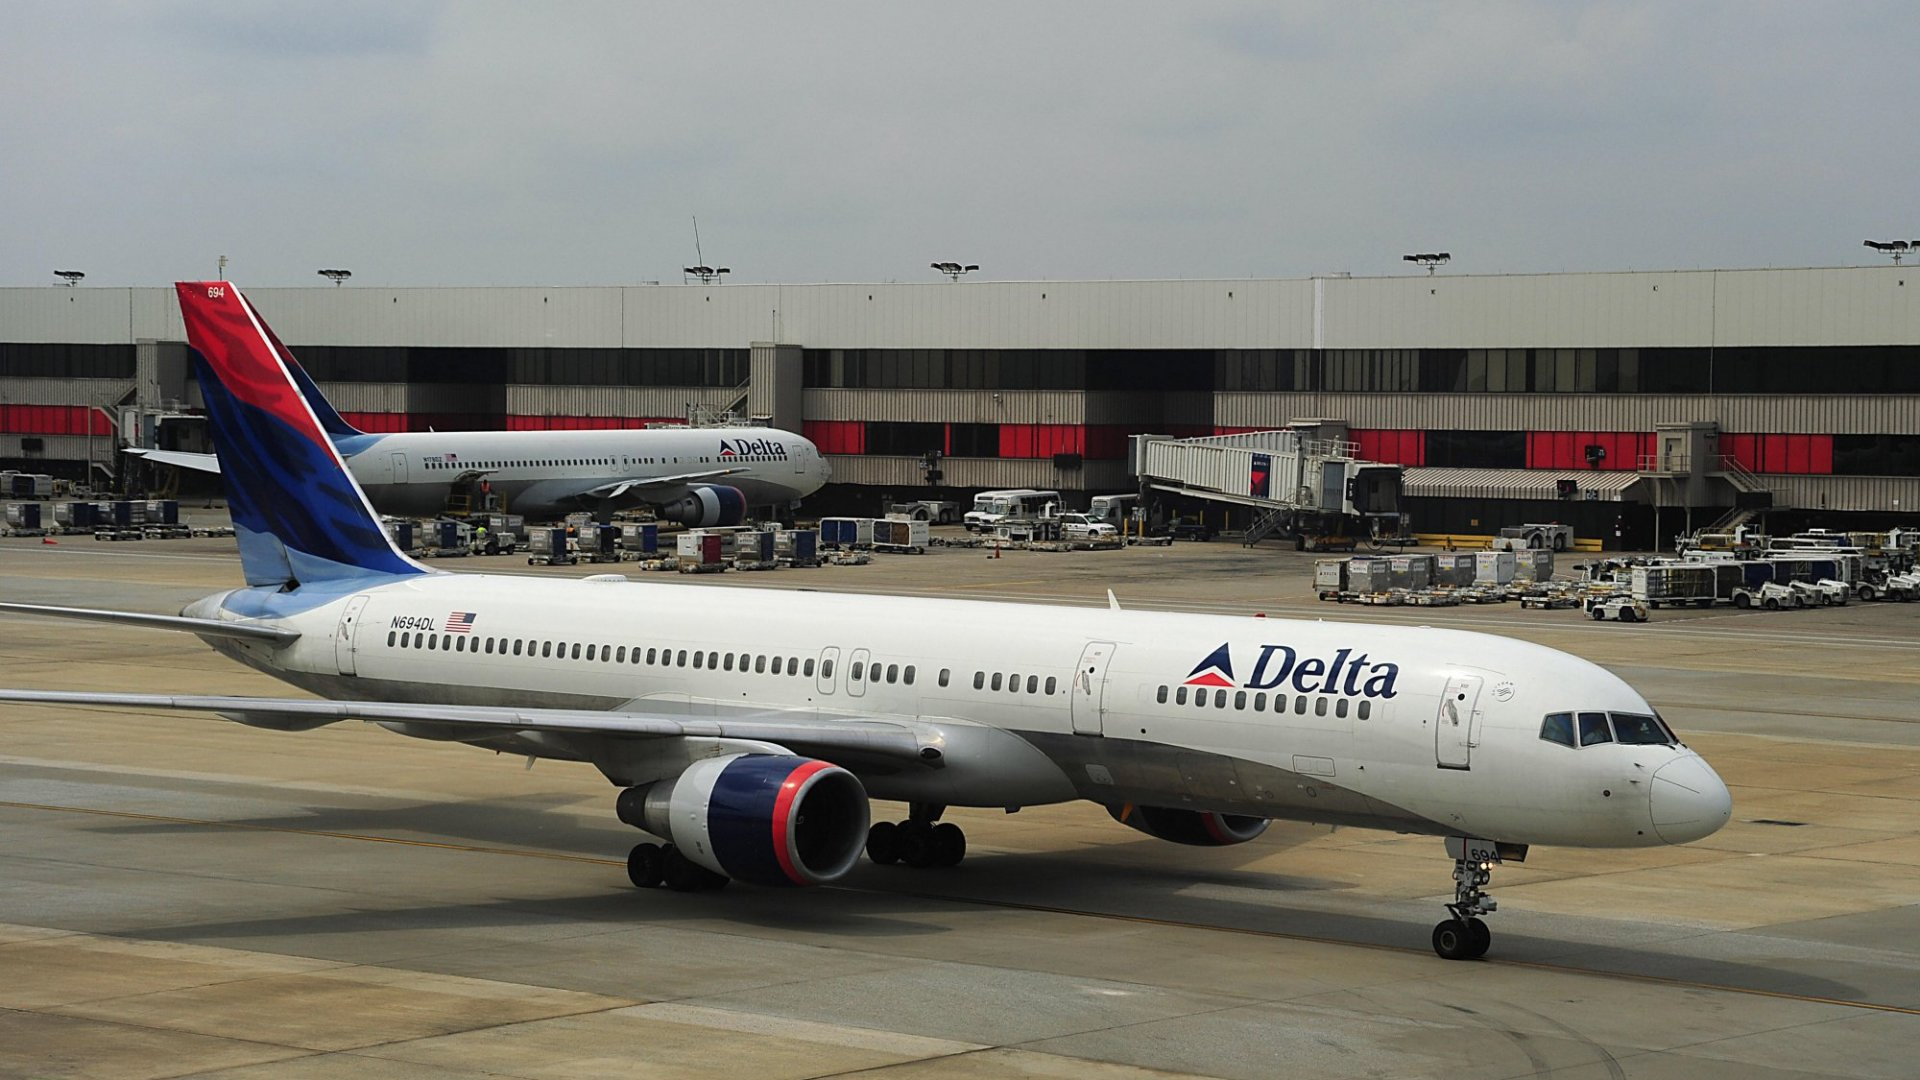 Flight Attendants Say These Delta Airlines Passengers Violated a Major Safety Rule. (They're Really Angry About It)